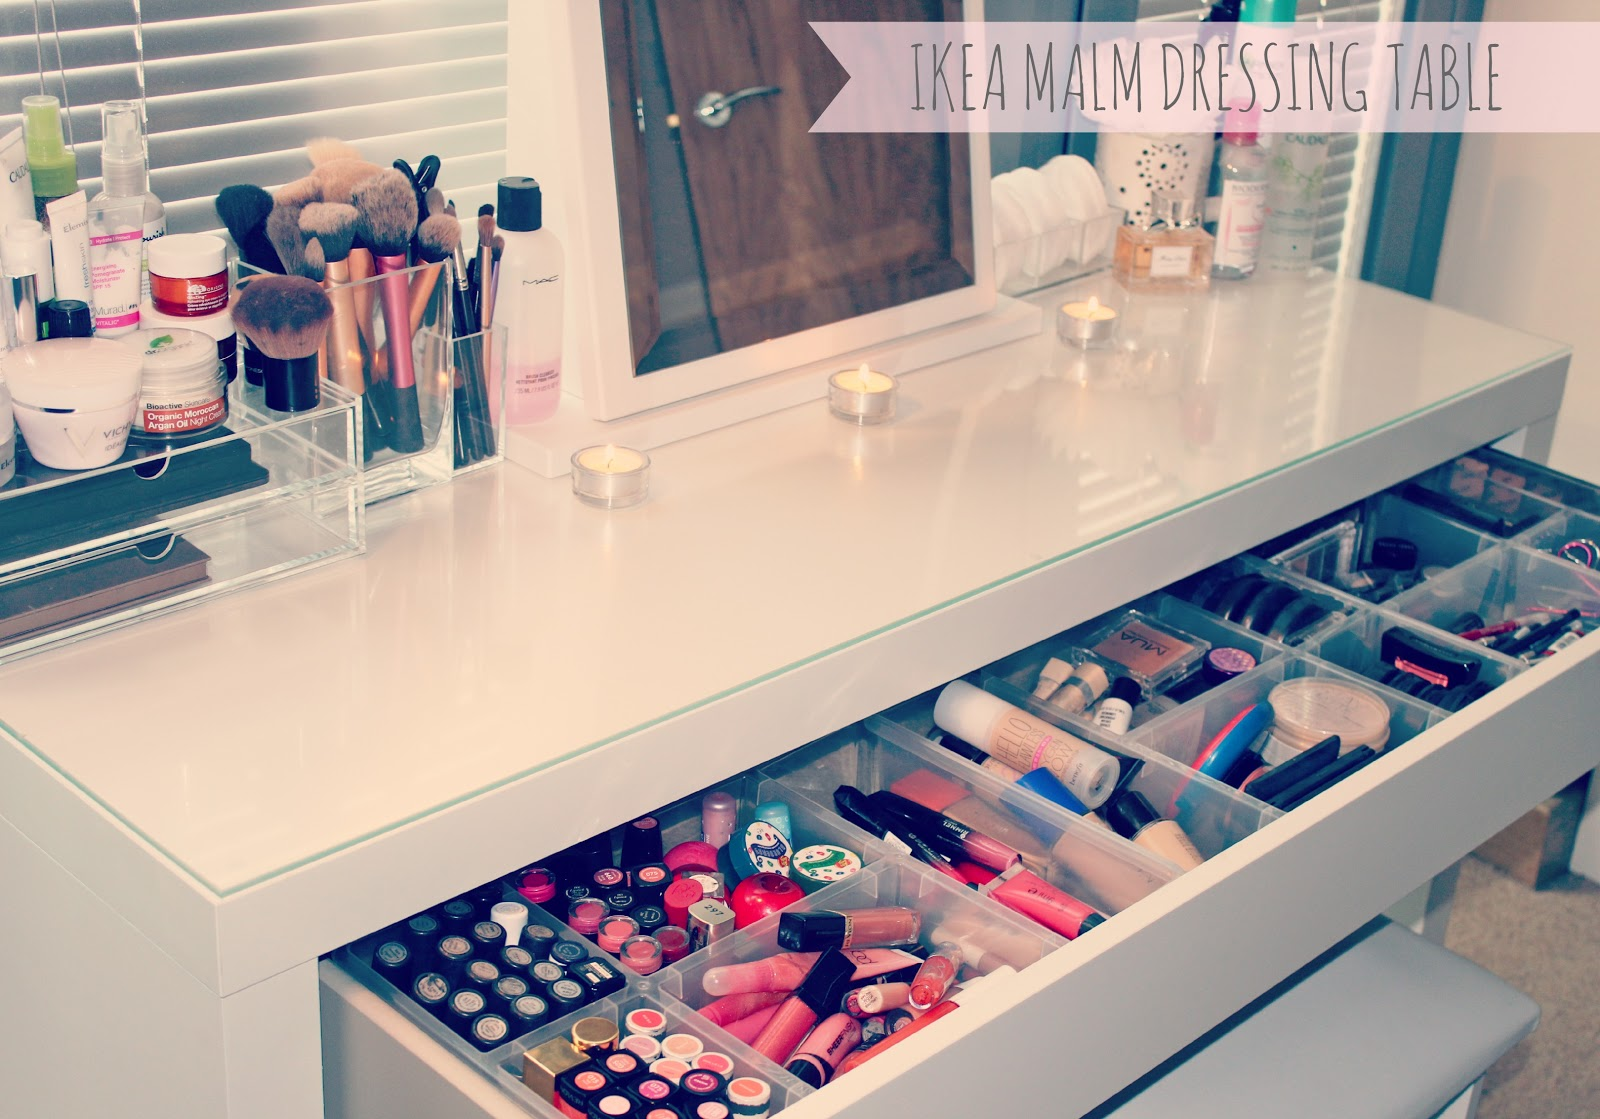 Ikea MALM dressing table-Ikea Antonius Basket Inserts-Makeup Storage-Makeup Collection- & My Makeup Storage // IKEA Malm Dressing Table | Sweet Fashion Make-Up